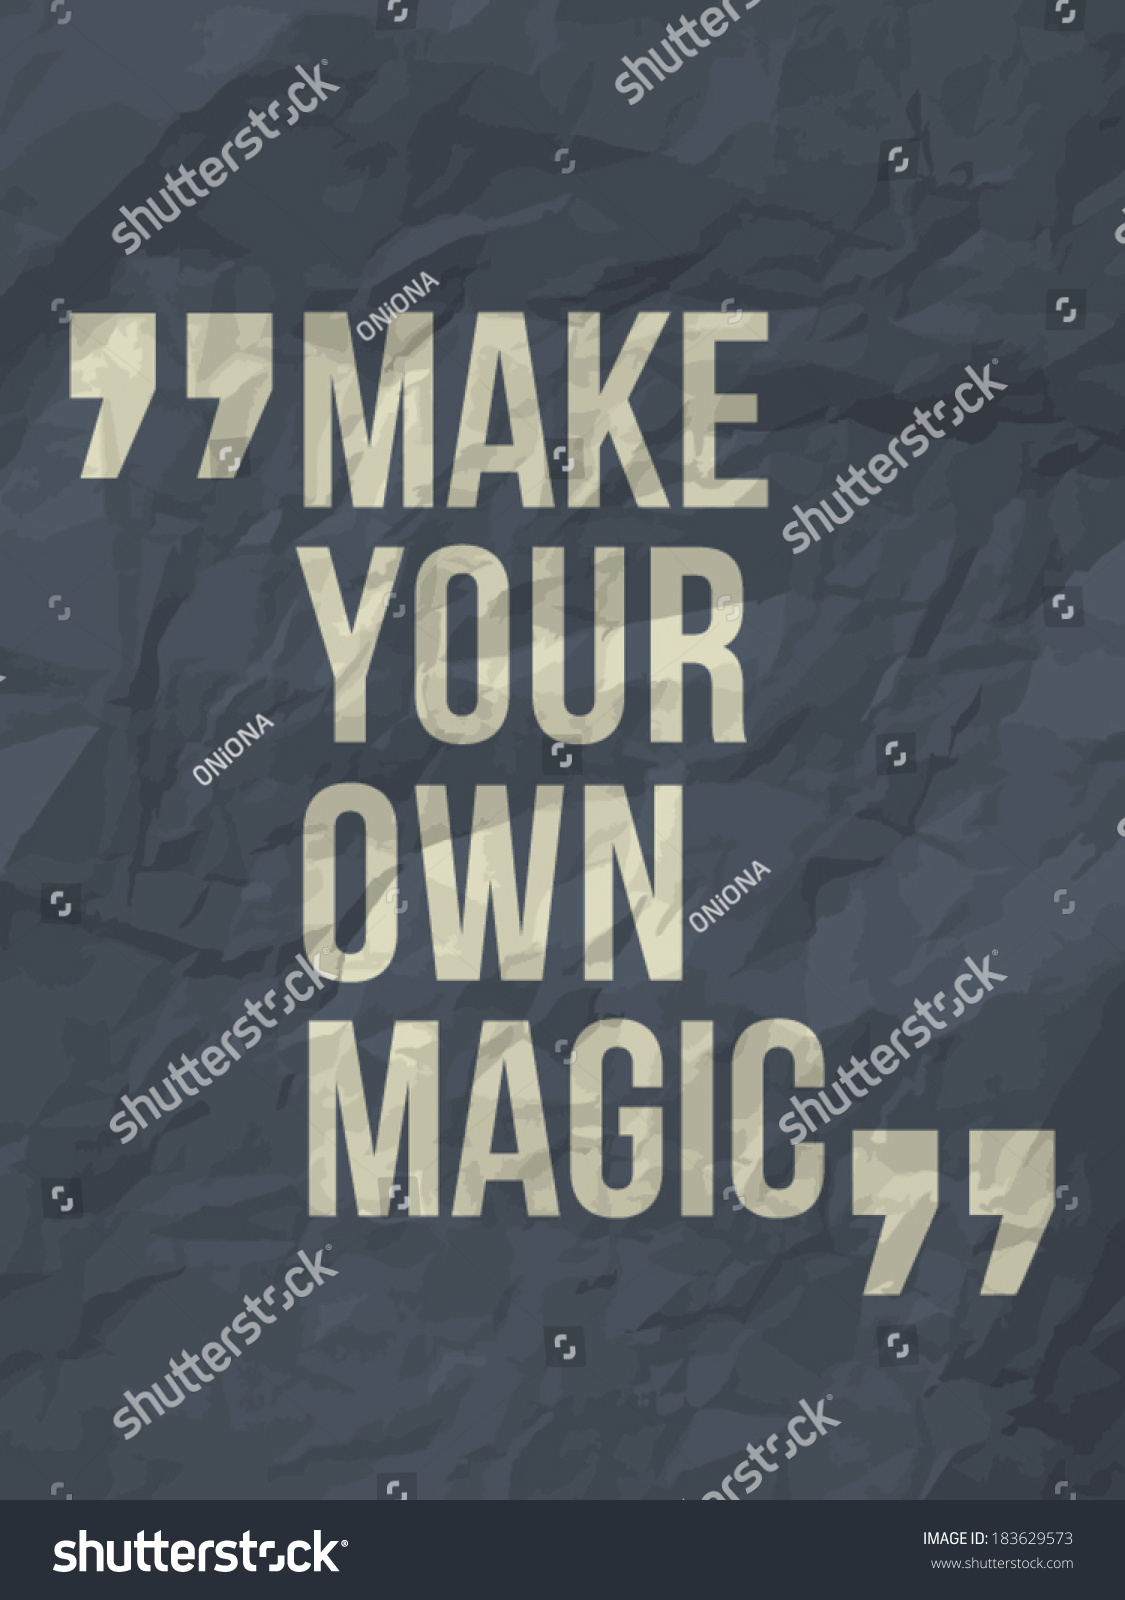 Make Your Own Quote Delectable Make Your Own Magic Quote On Stock Vector 183629573  Shutterstock